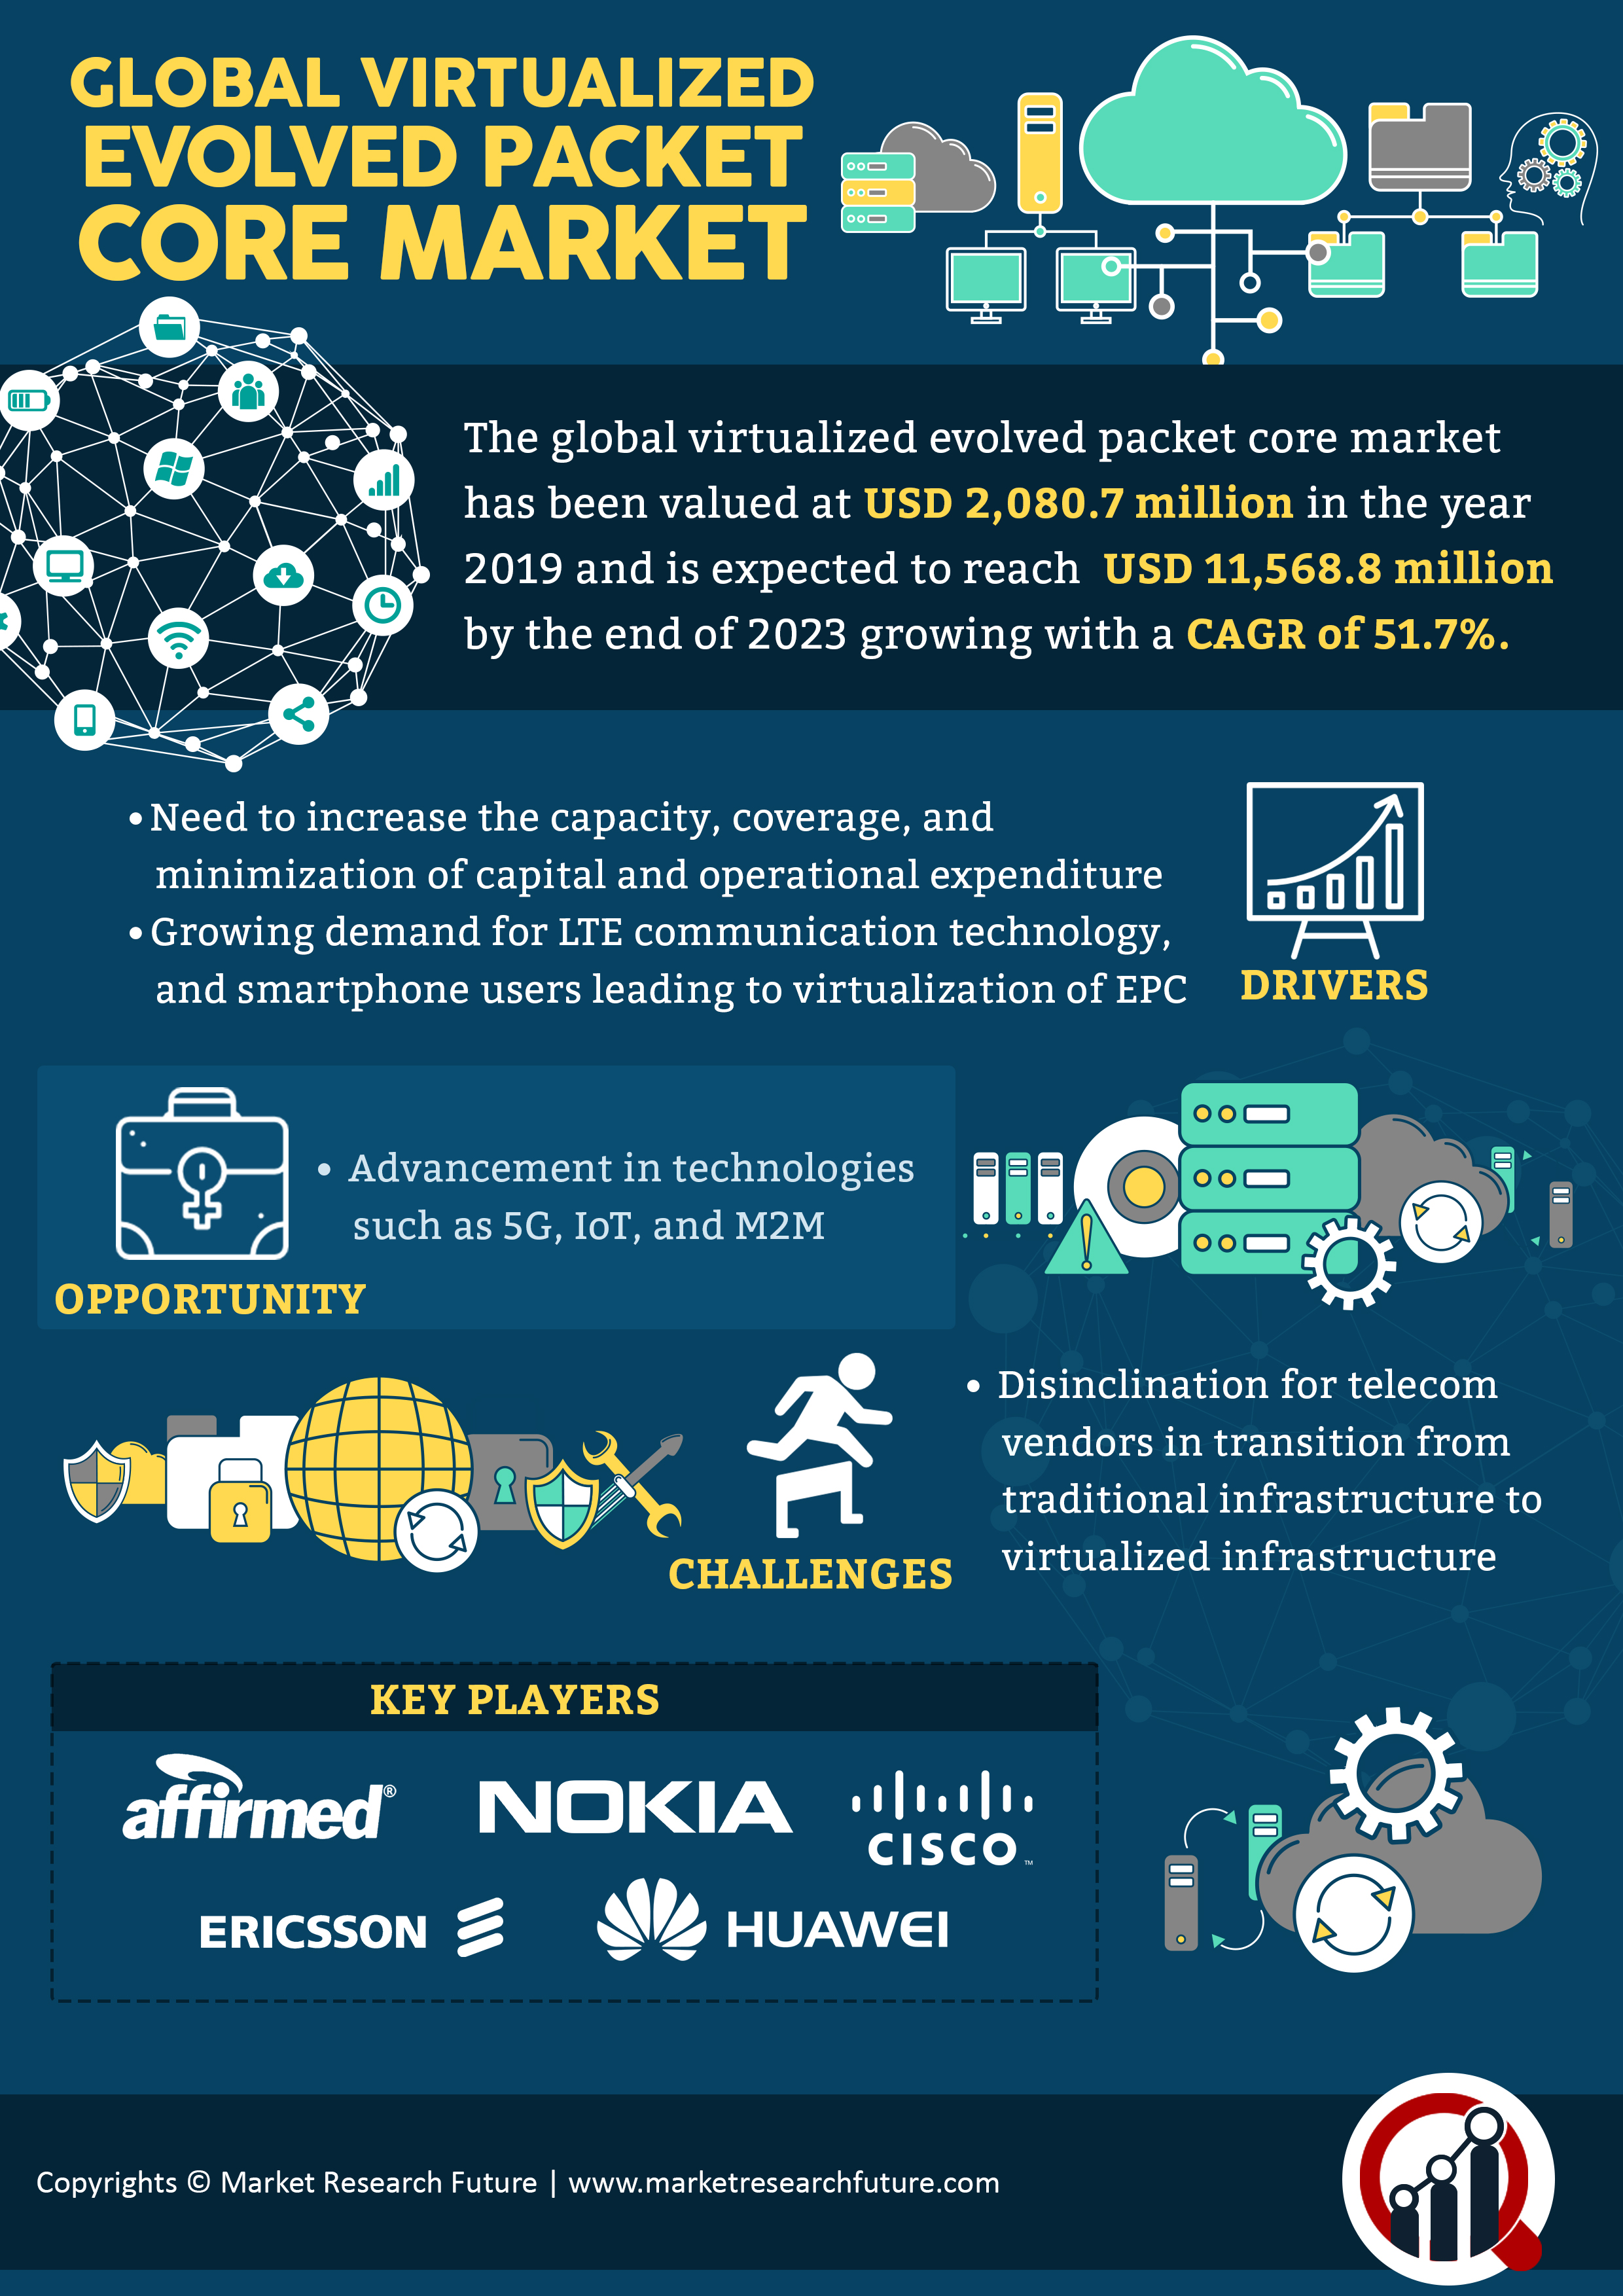 Virtualized Evolved Packet Core Market 2K19: Global Analysis, Business Strategy, Development Status, Emerging Technologies, Future Plans and Trends by Forecast 2K23